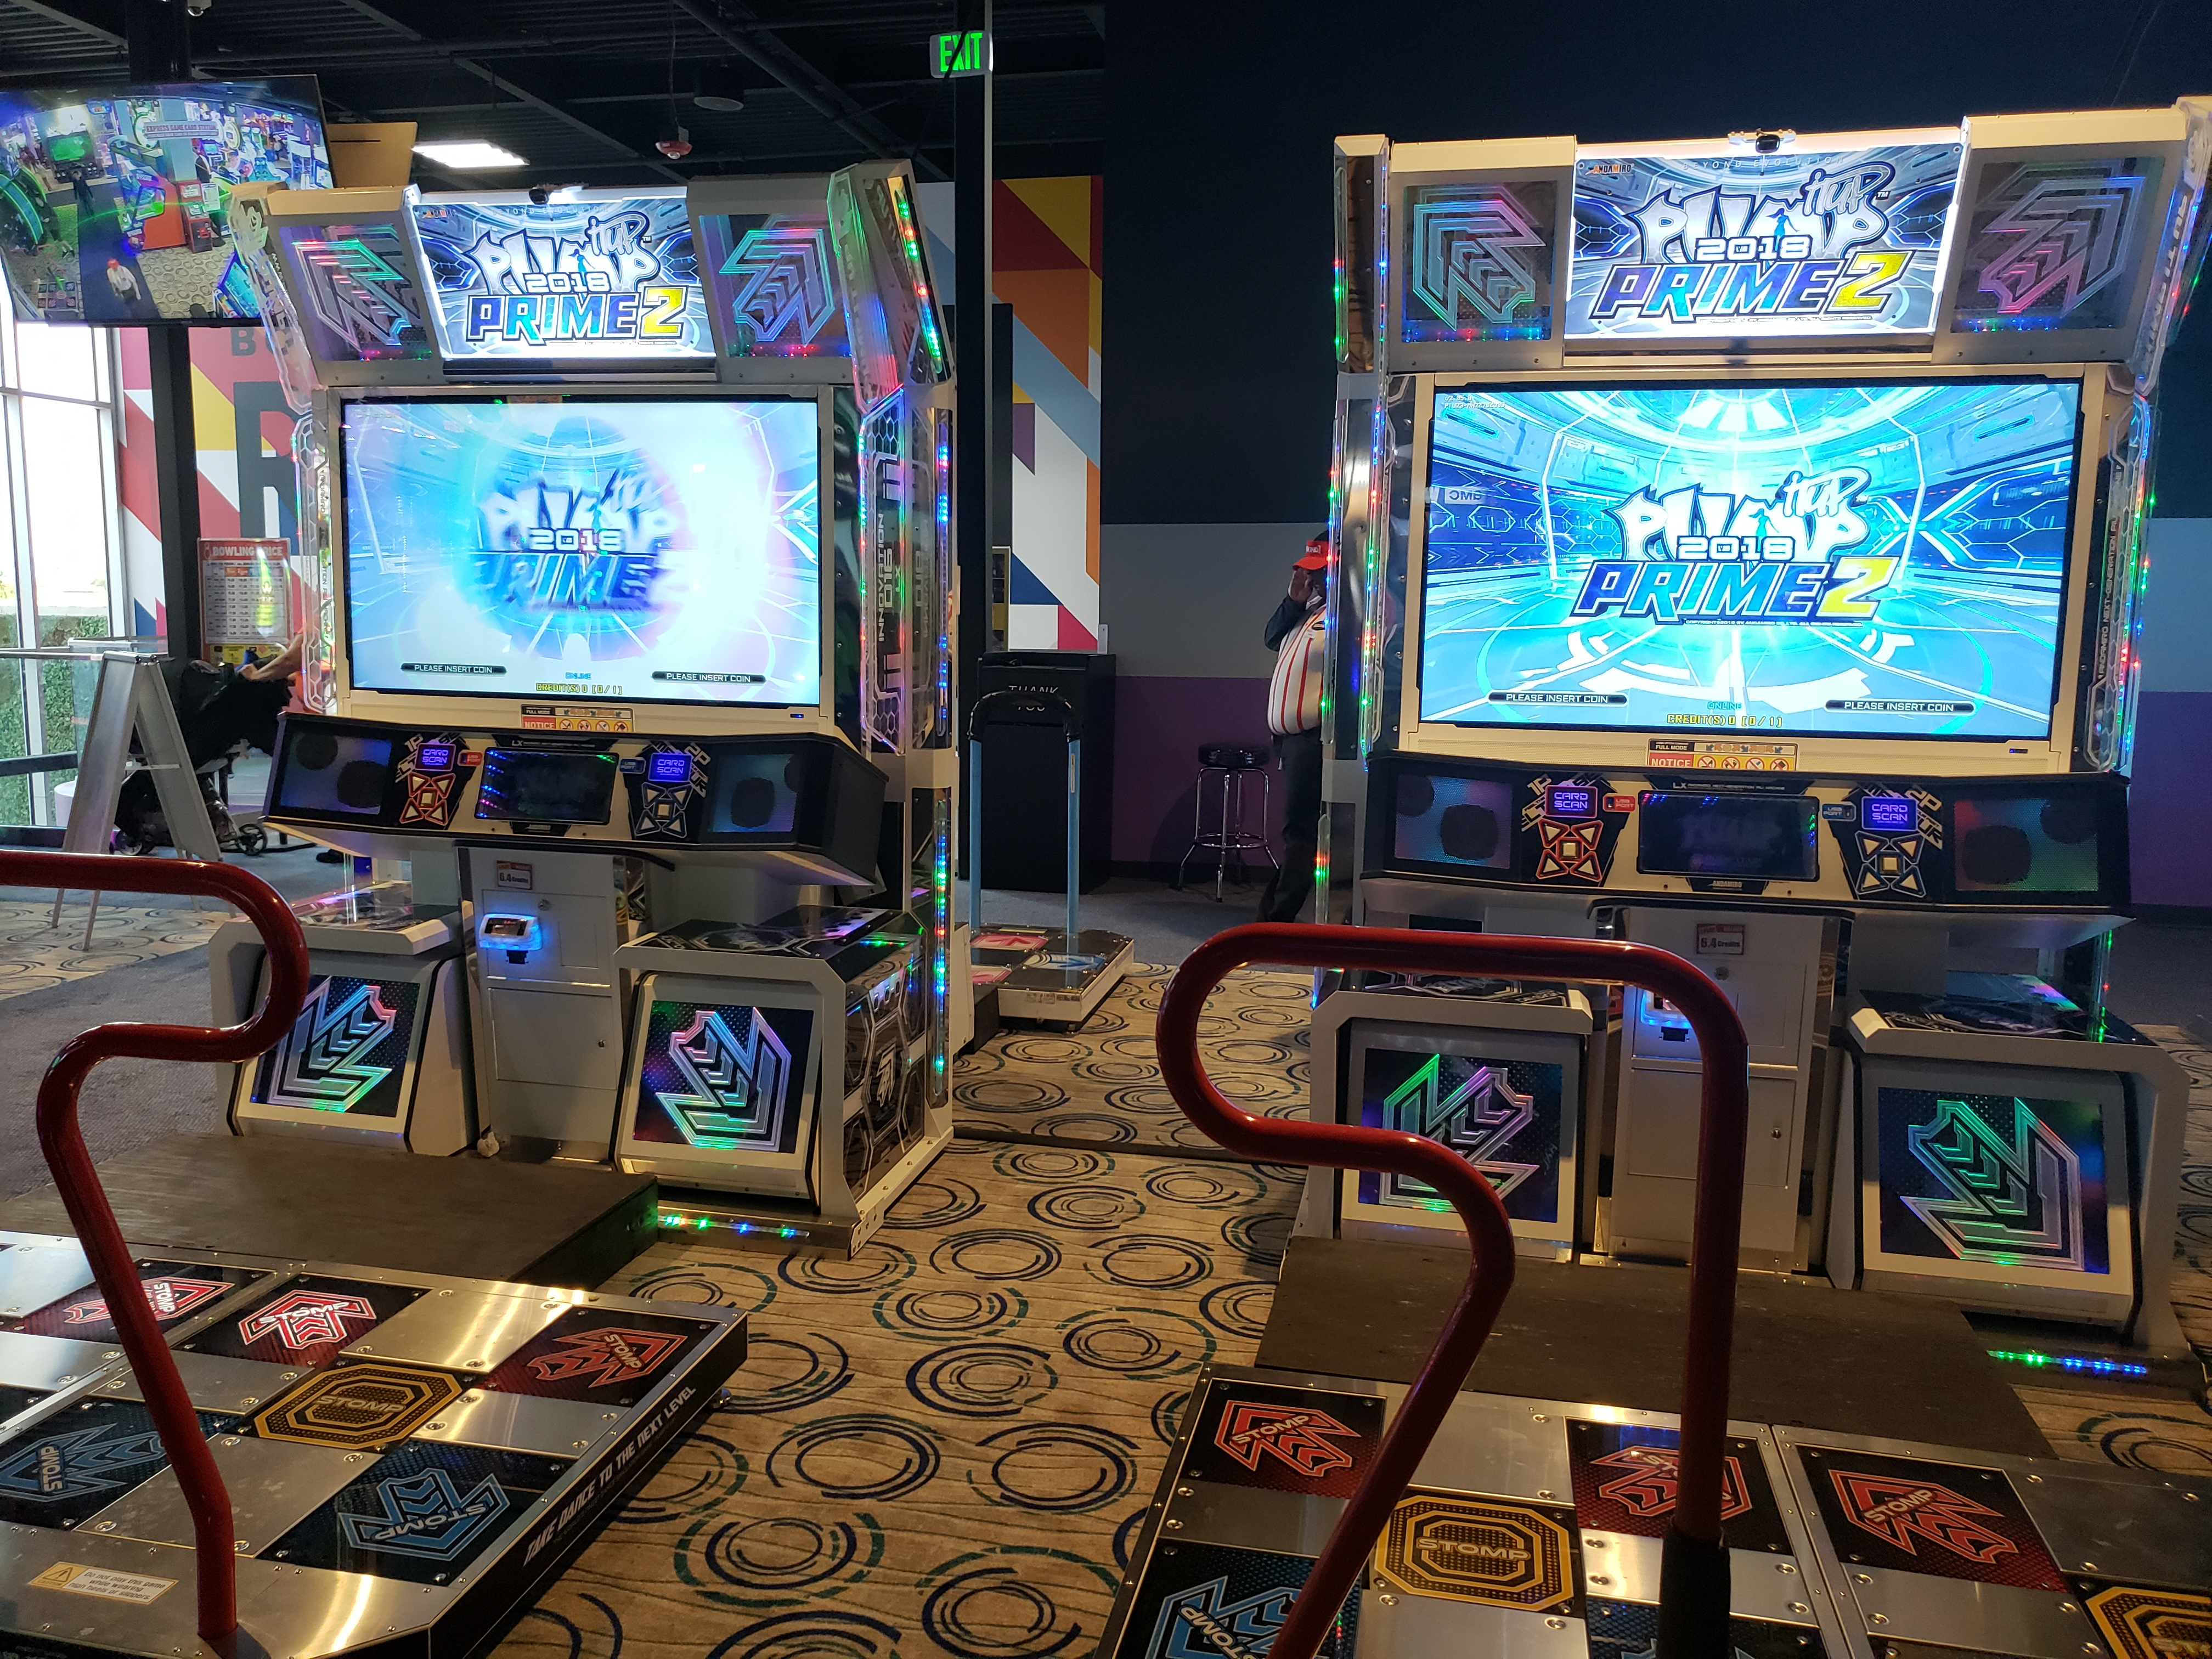 2 Pump it Up Prime 2 machines